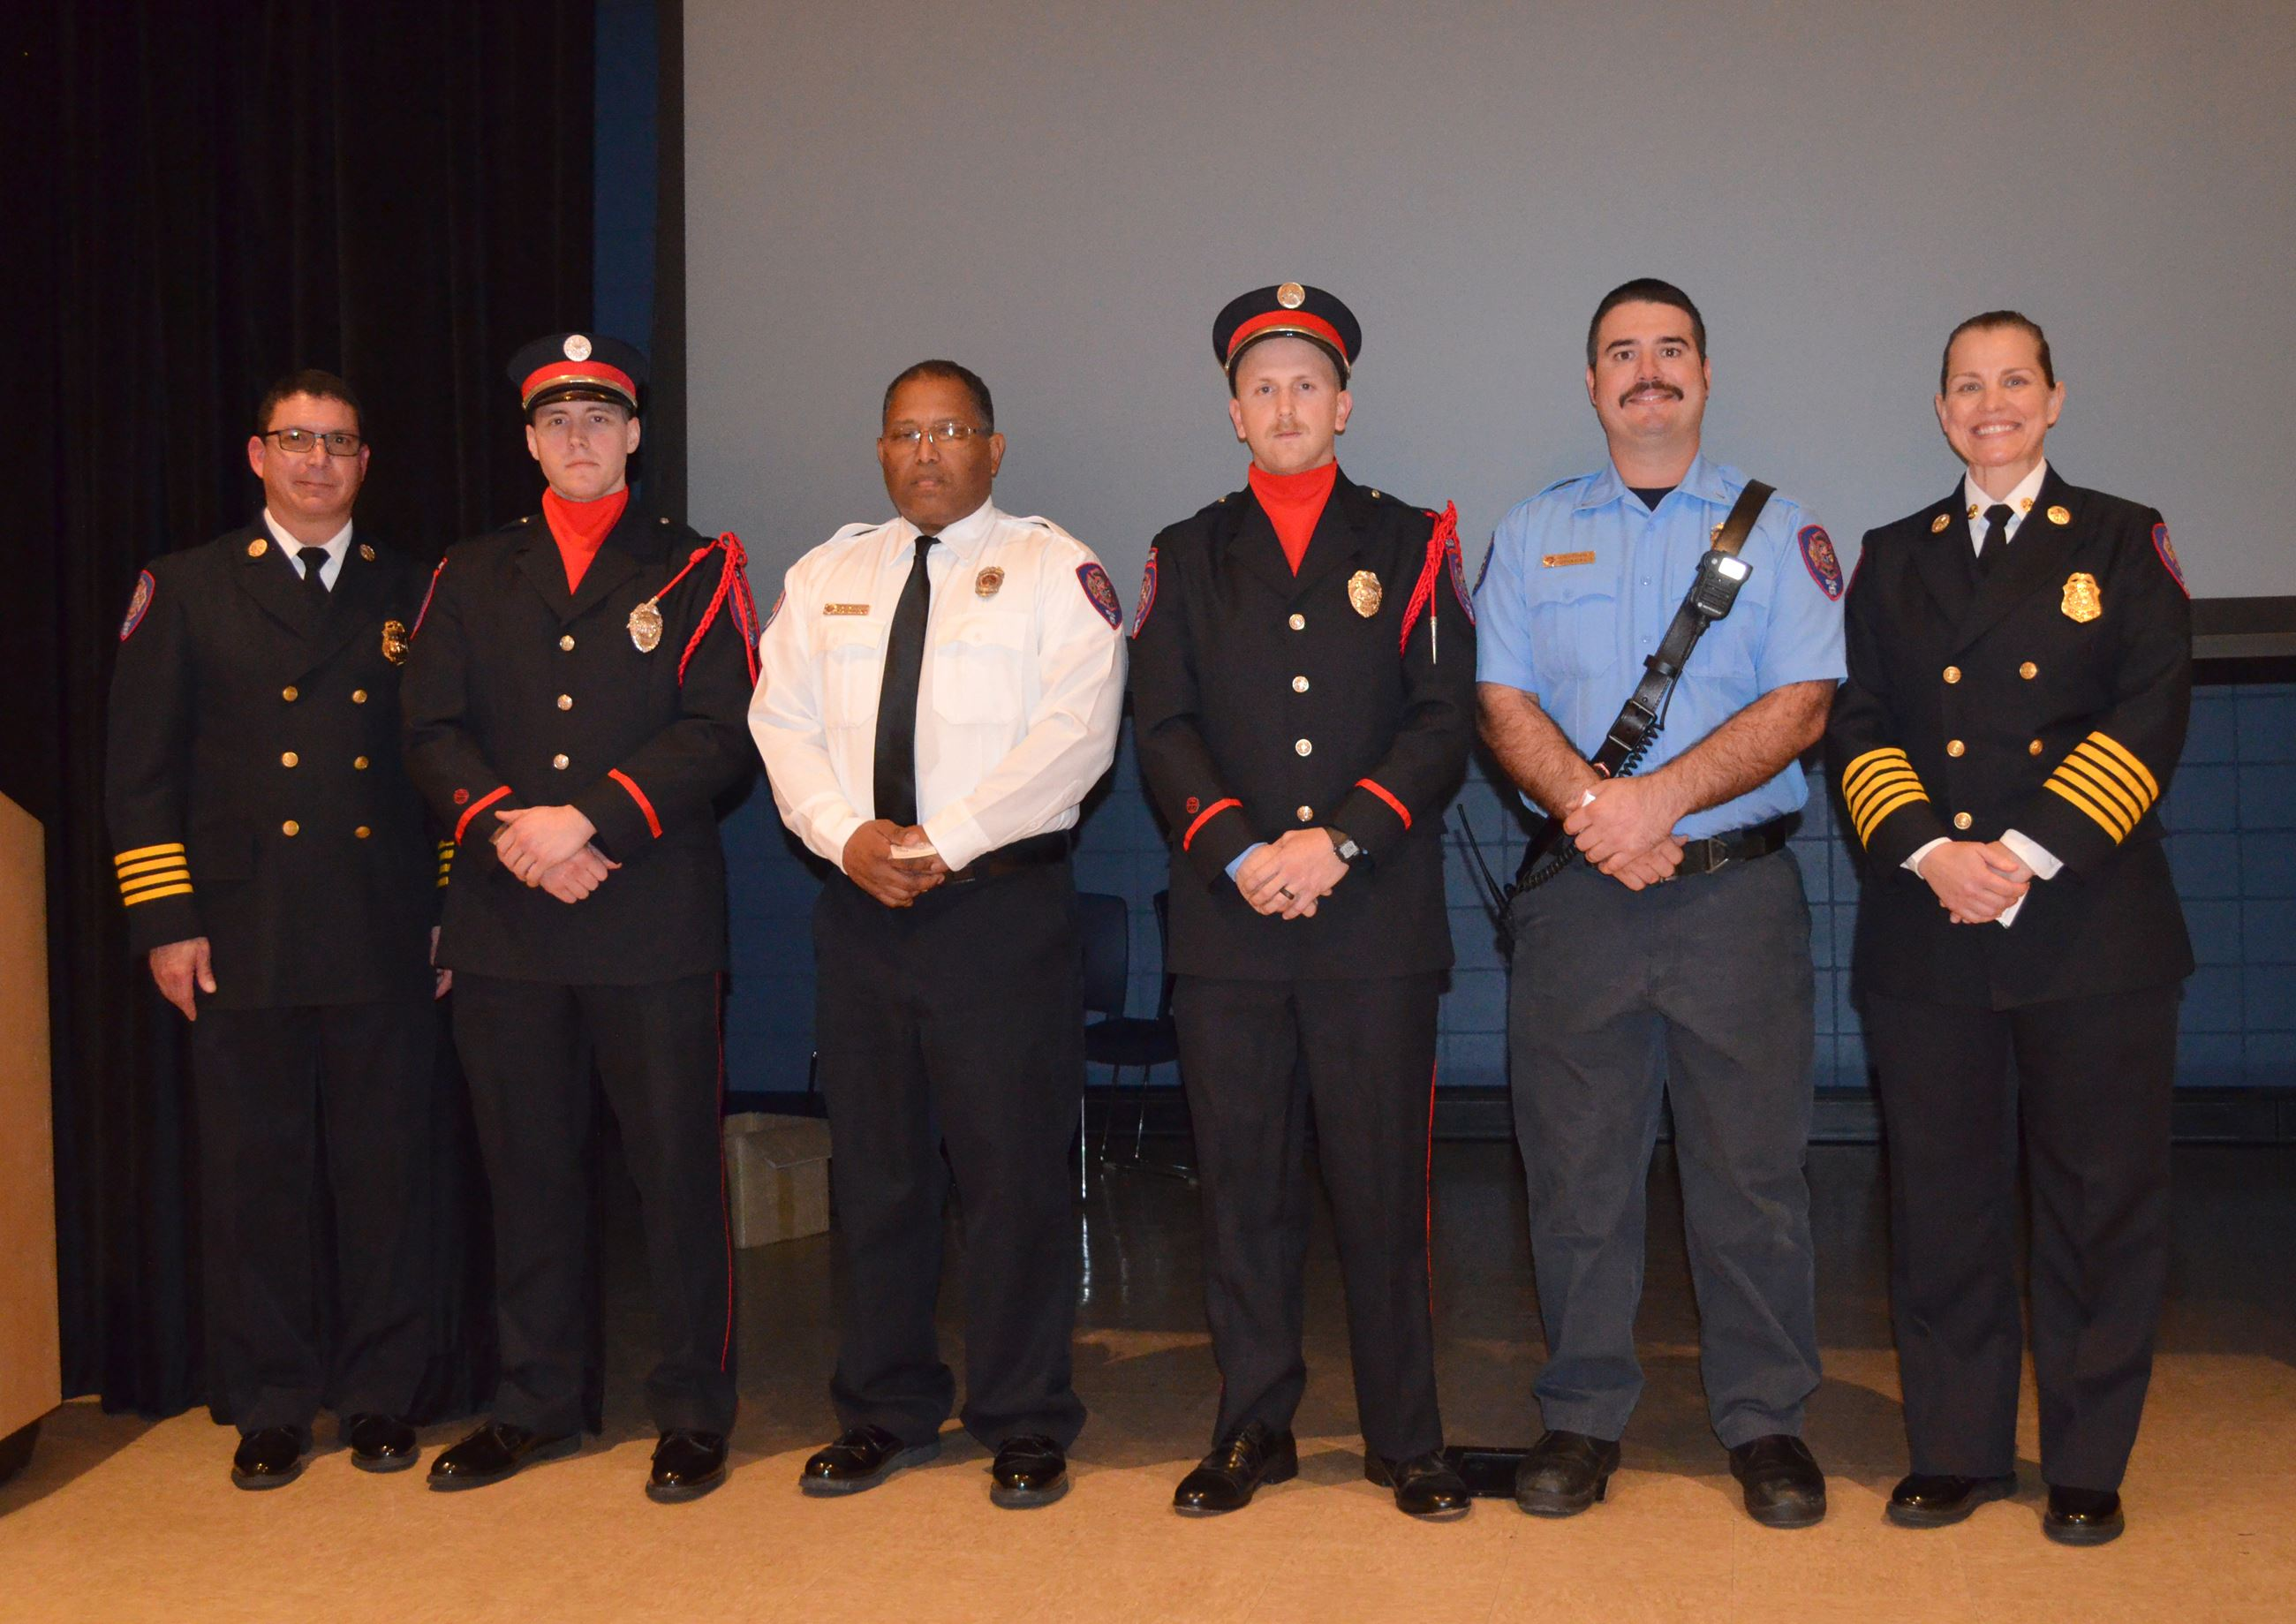 Members of the pensacola fire department at their annual awards ceremony